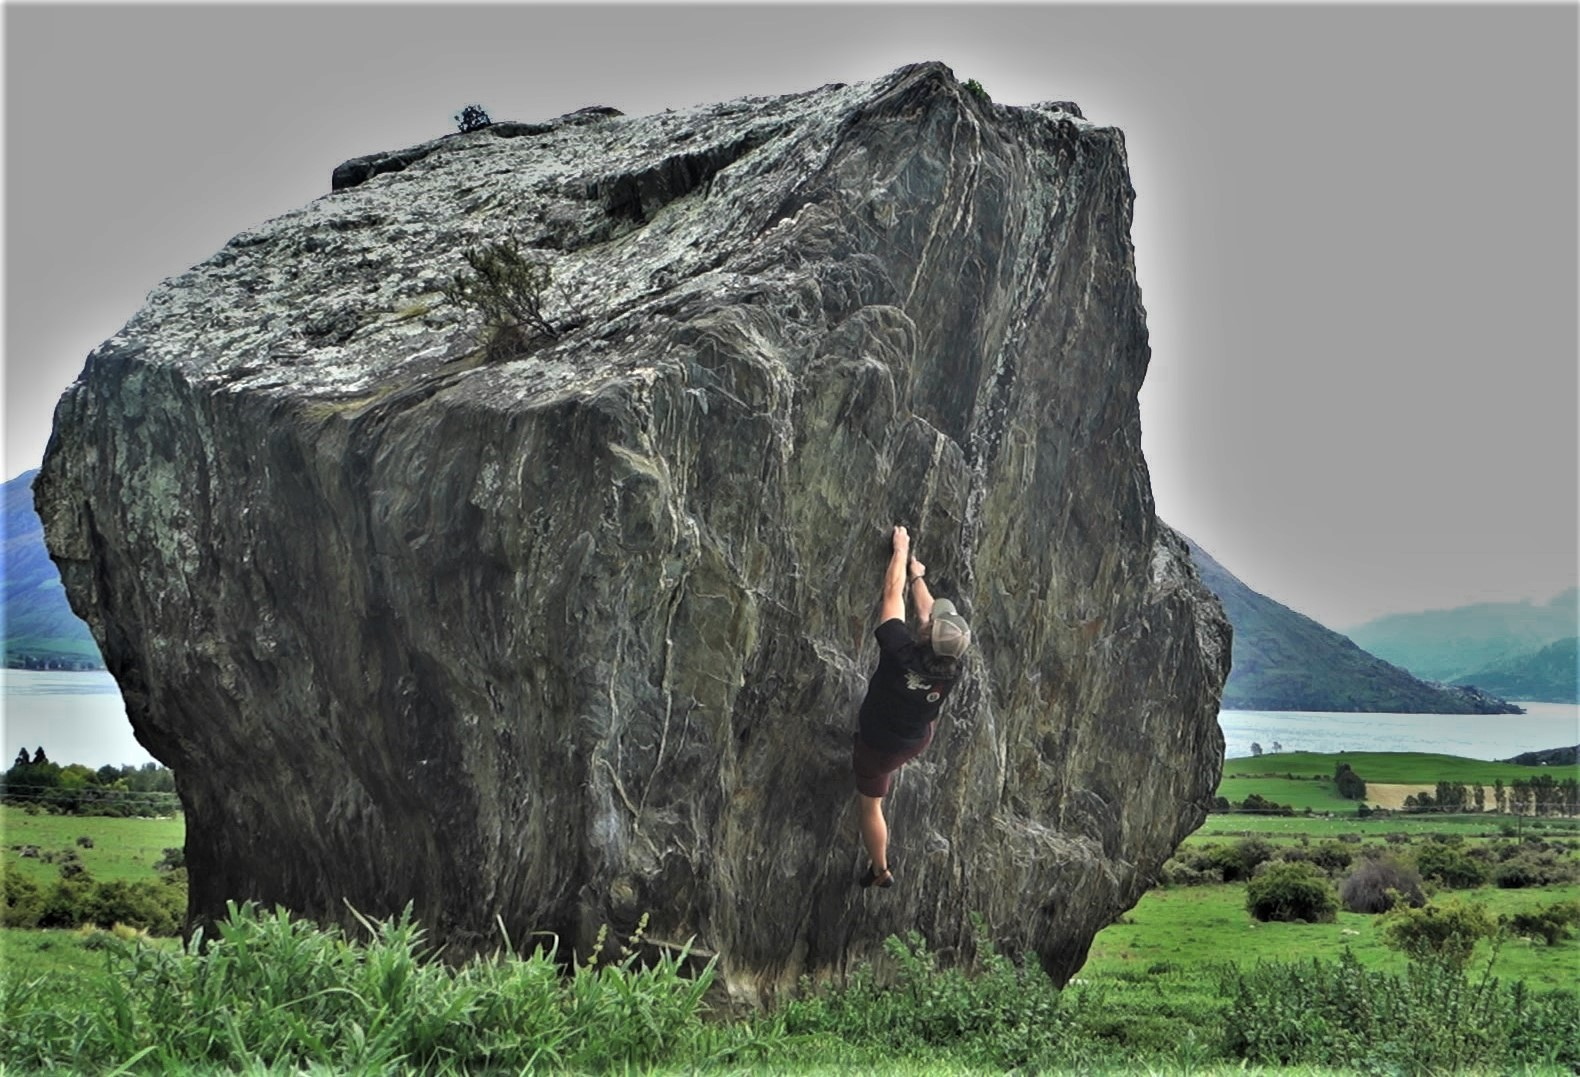 Playing around on one of the boulders at Jardines.